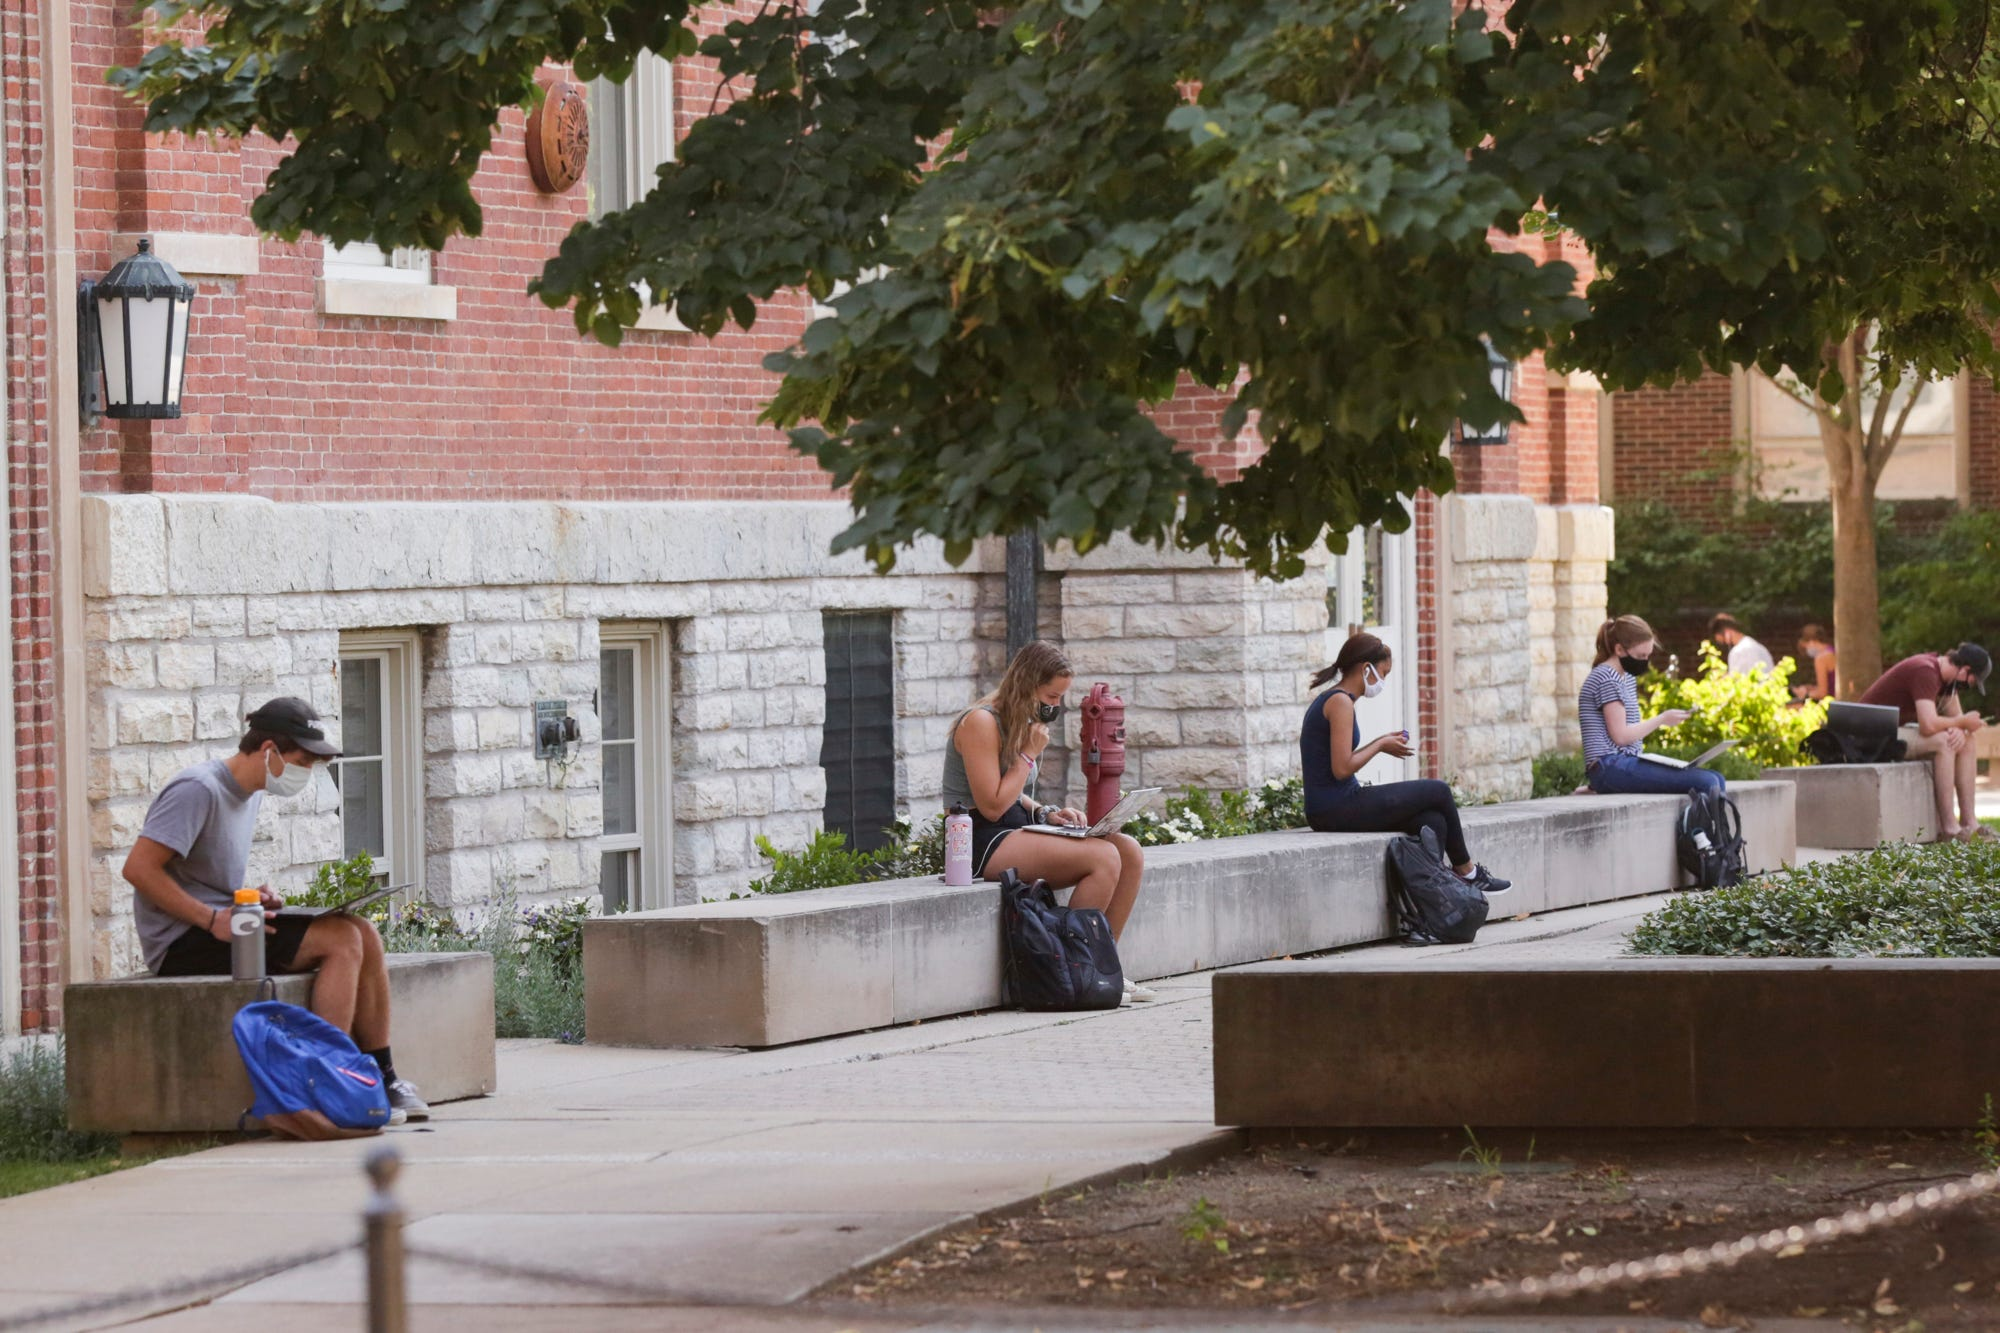 Students sit spaced out by Purdue's University Hall on Aug. 24 in West Lafayette, Indiana.